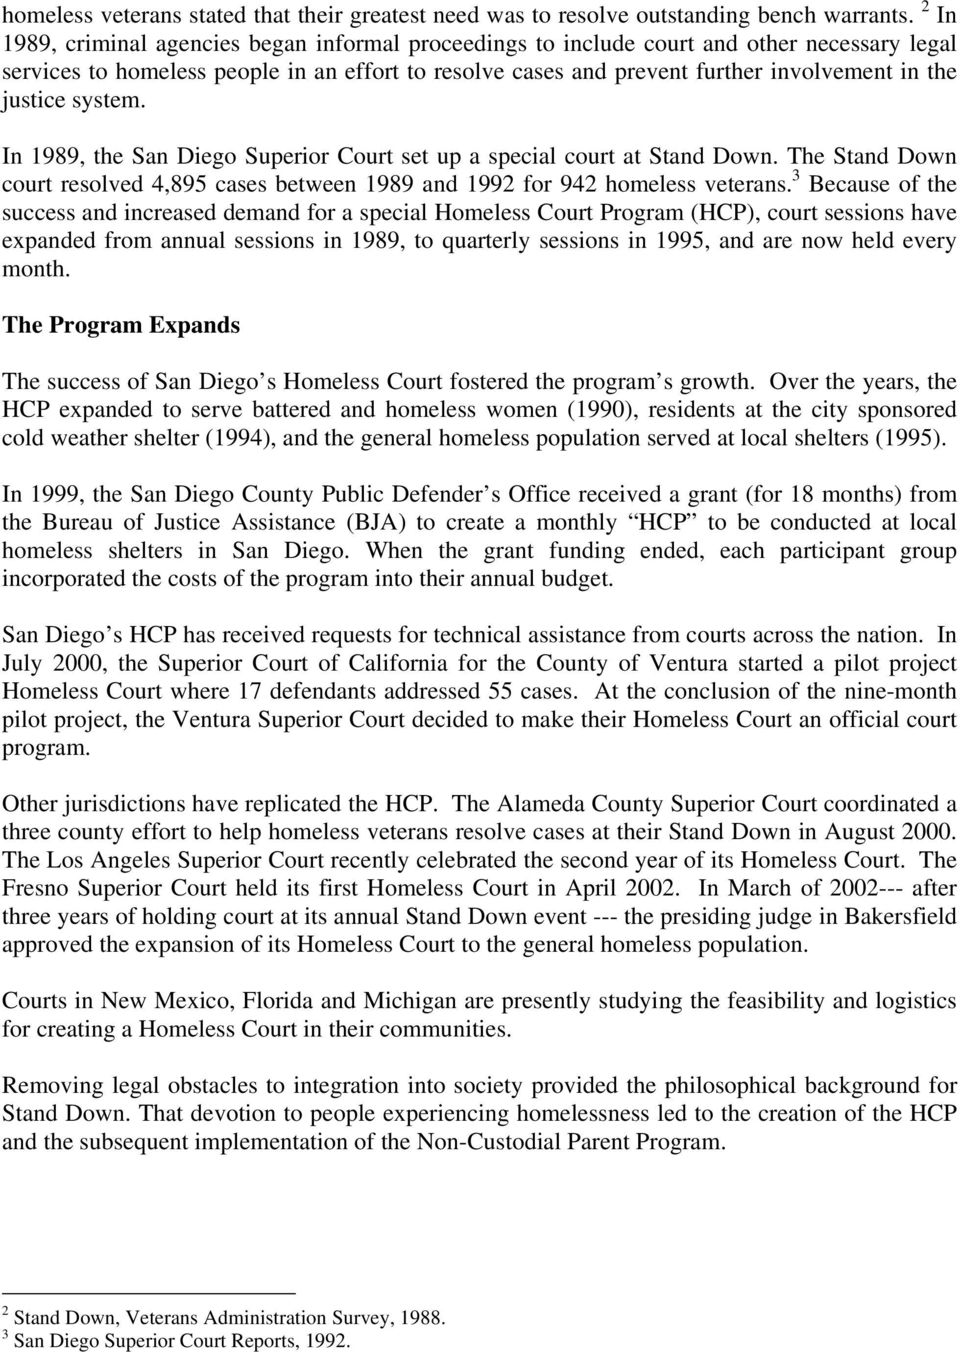 justice system. In 1989, the San Diego Superior Court set up a special court at Stand Down. The Stand Down court resolved 4,895 cases between 1989 and 1992 for 942 homeless veterans.